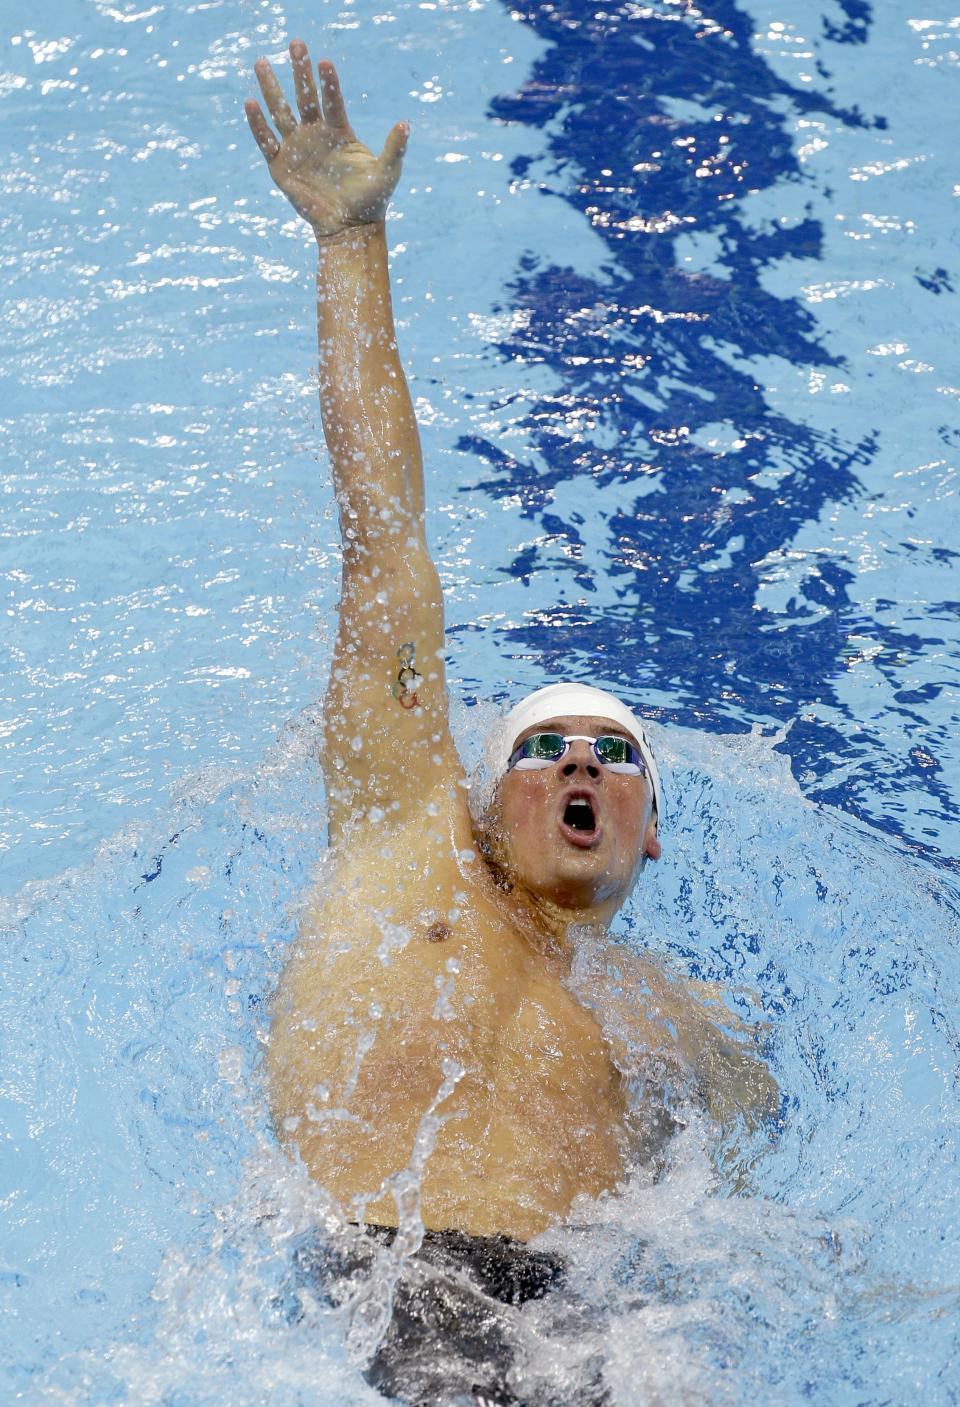 USA's Ryan Lochte competes in a heat of the men's 400-meter individual medley at the Aquatics Centre in the Olympic Park during the 2012 Summer Olympics in London, Saturday, July 28, 2012. (AP Photo/Lee Jin-man)